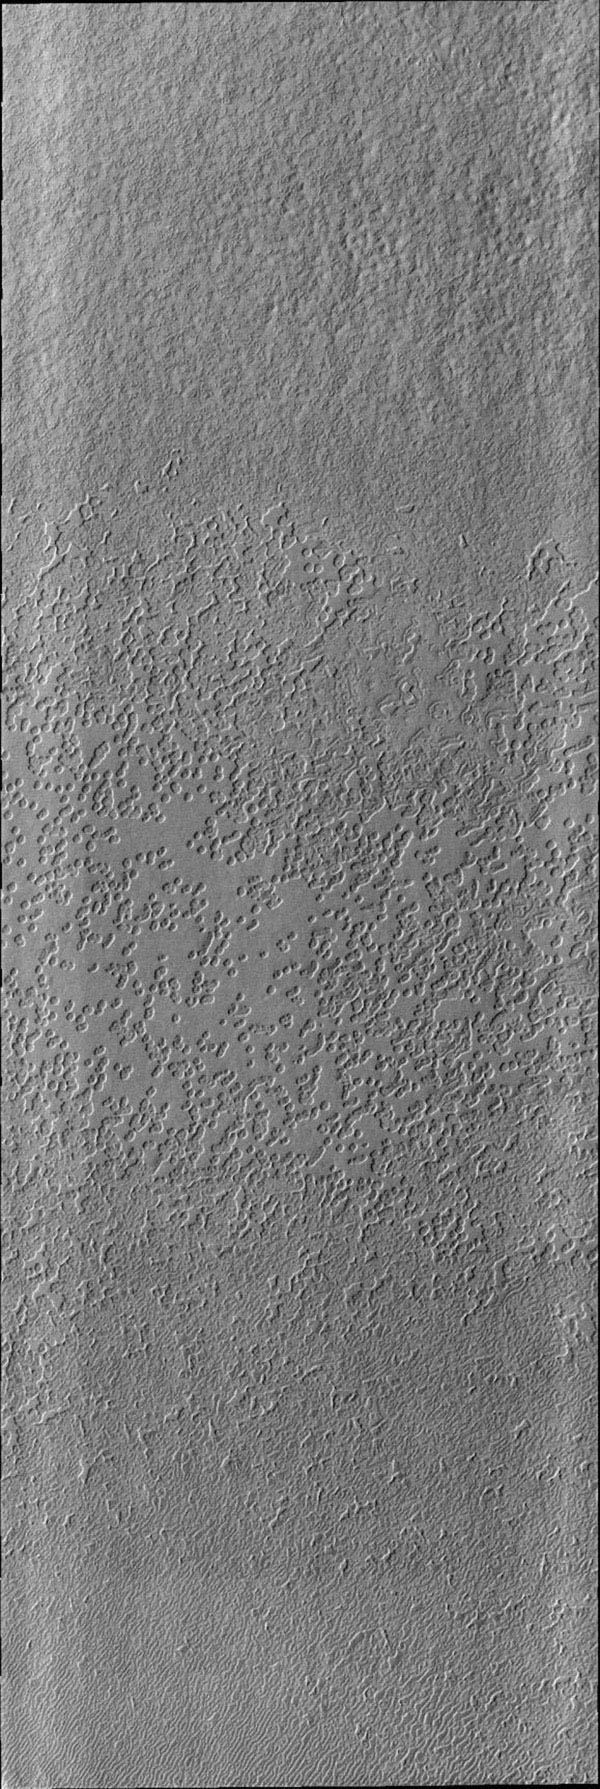 As spring turns to summer, the frost cover has been removed from the south polar cap on Mars. The surface textures seen in this image are created by action of the sun on the icy cap as seen by NASA's Mars Odyssey spacecraft.